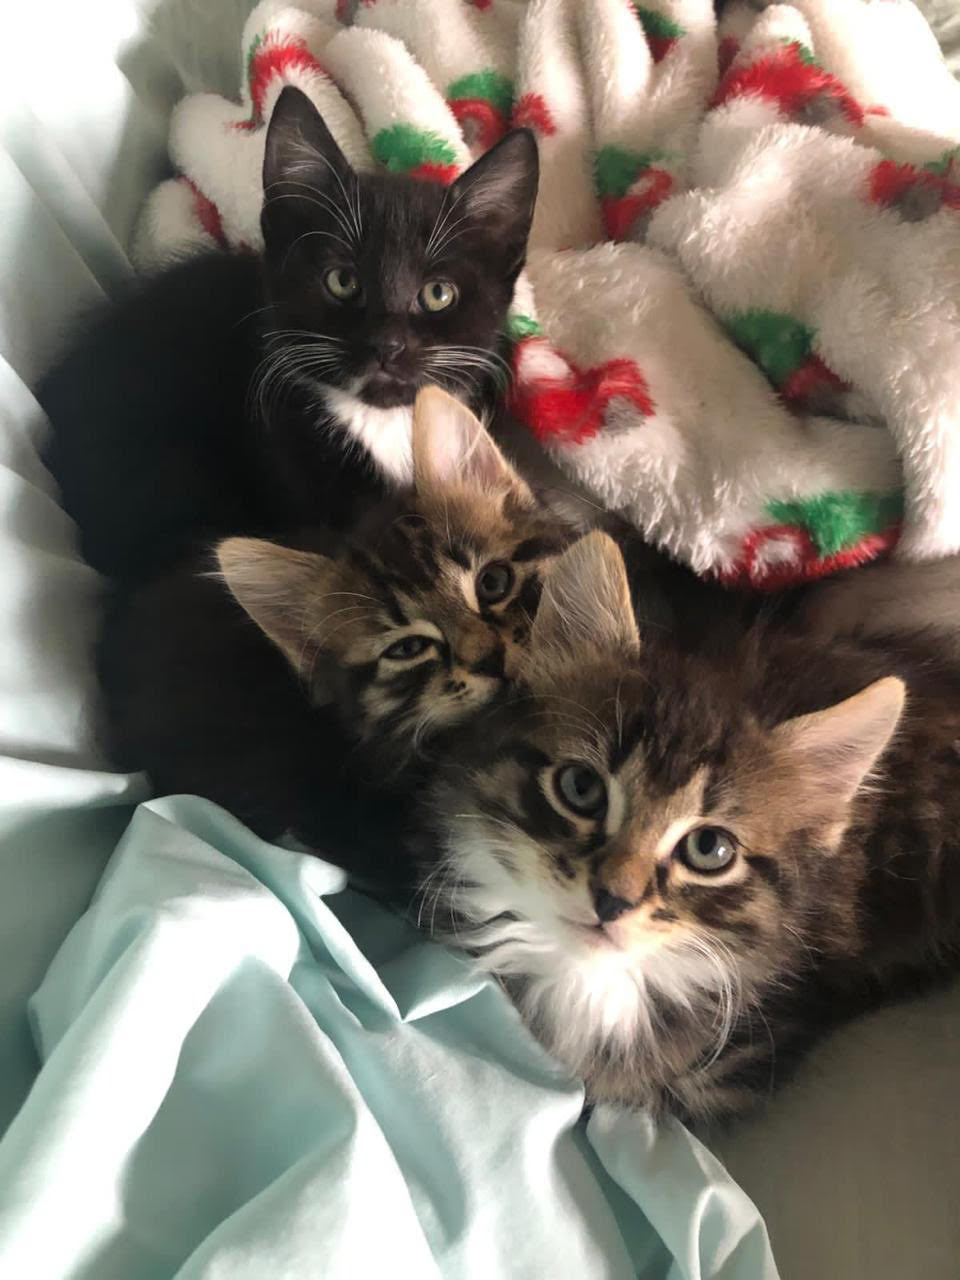 Holly Creenaune and Randi Irwin's foster kittens Elton, Cannondale, and Malika.